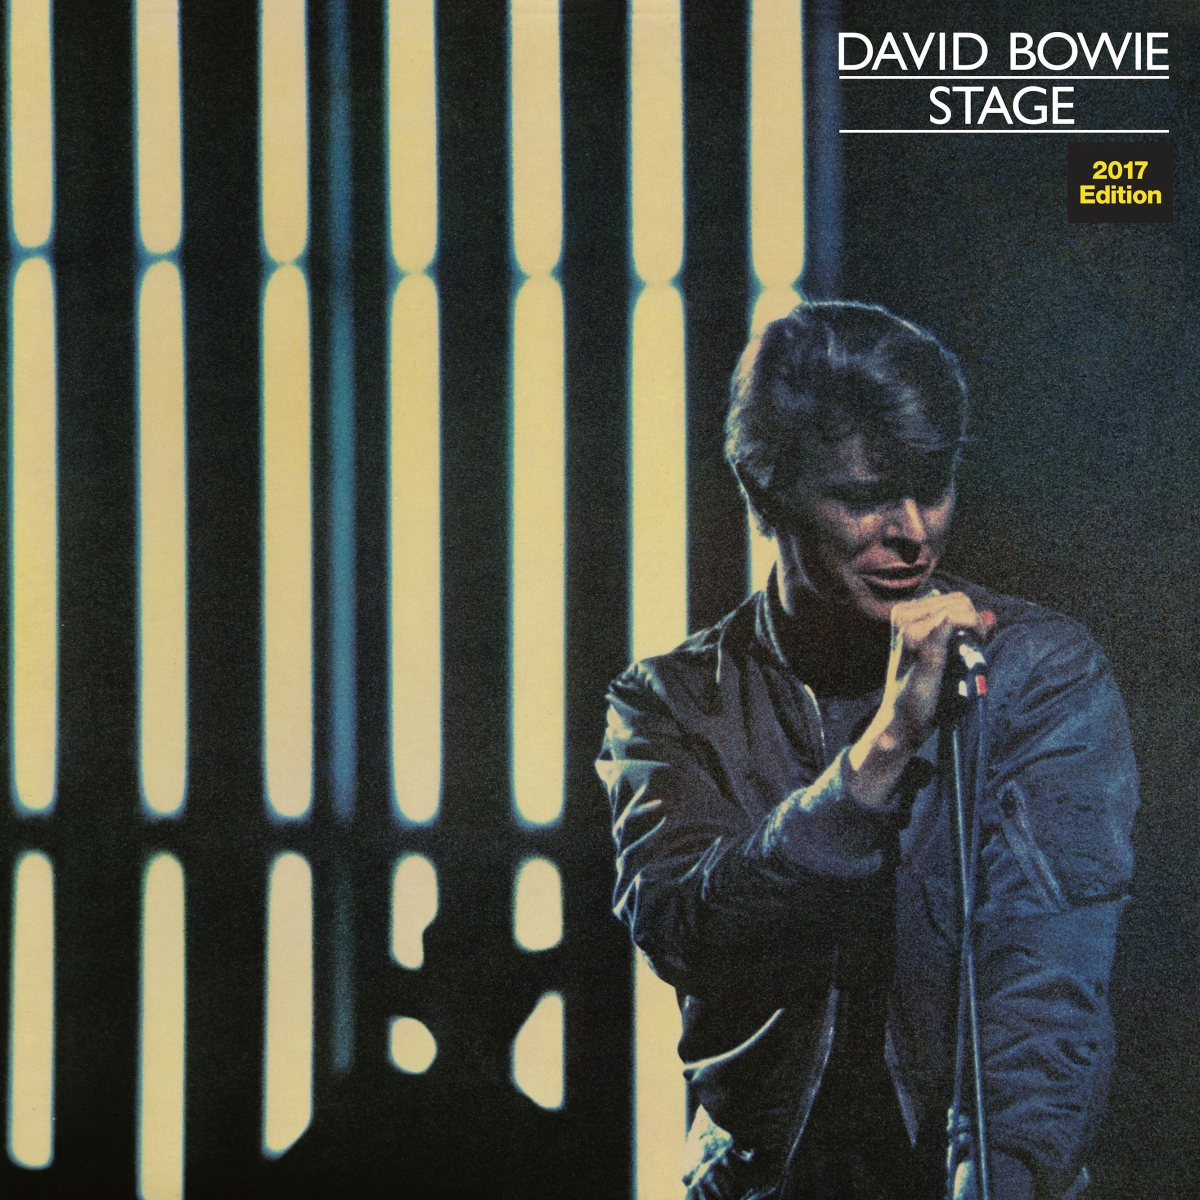 Stage 2017 Mix <2017 Remaster> - David Bowie - Musik - 1WP - 4943674278008 - February 18, 2023